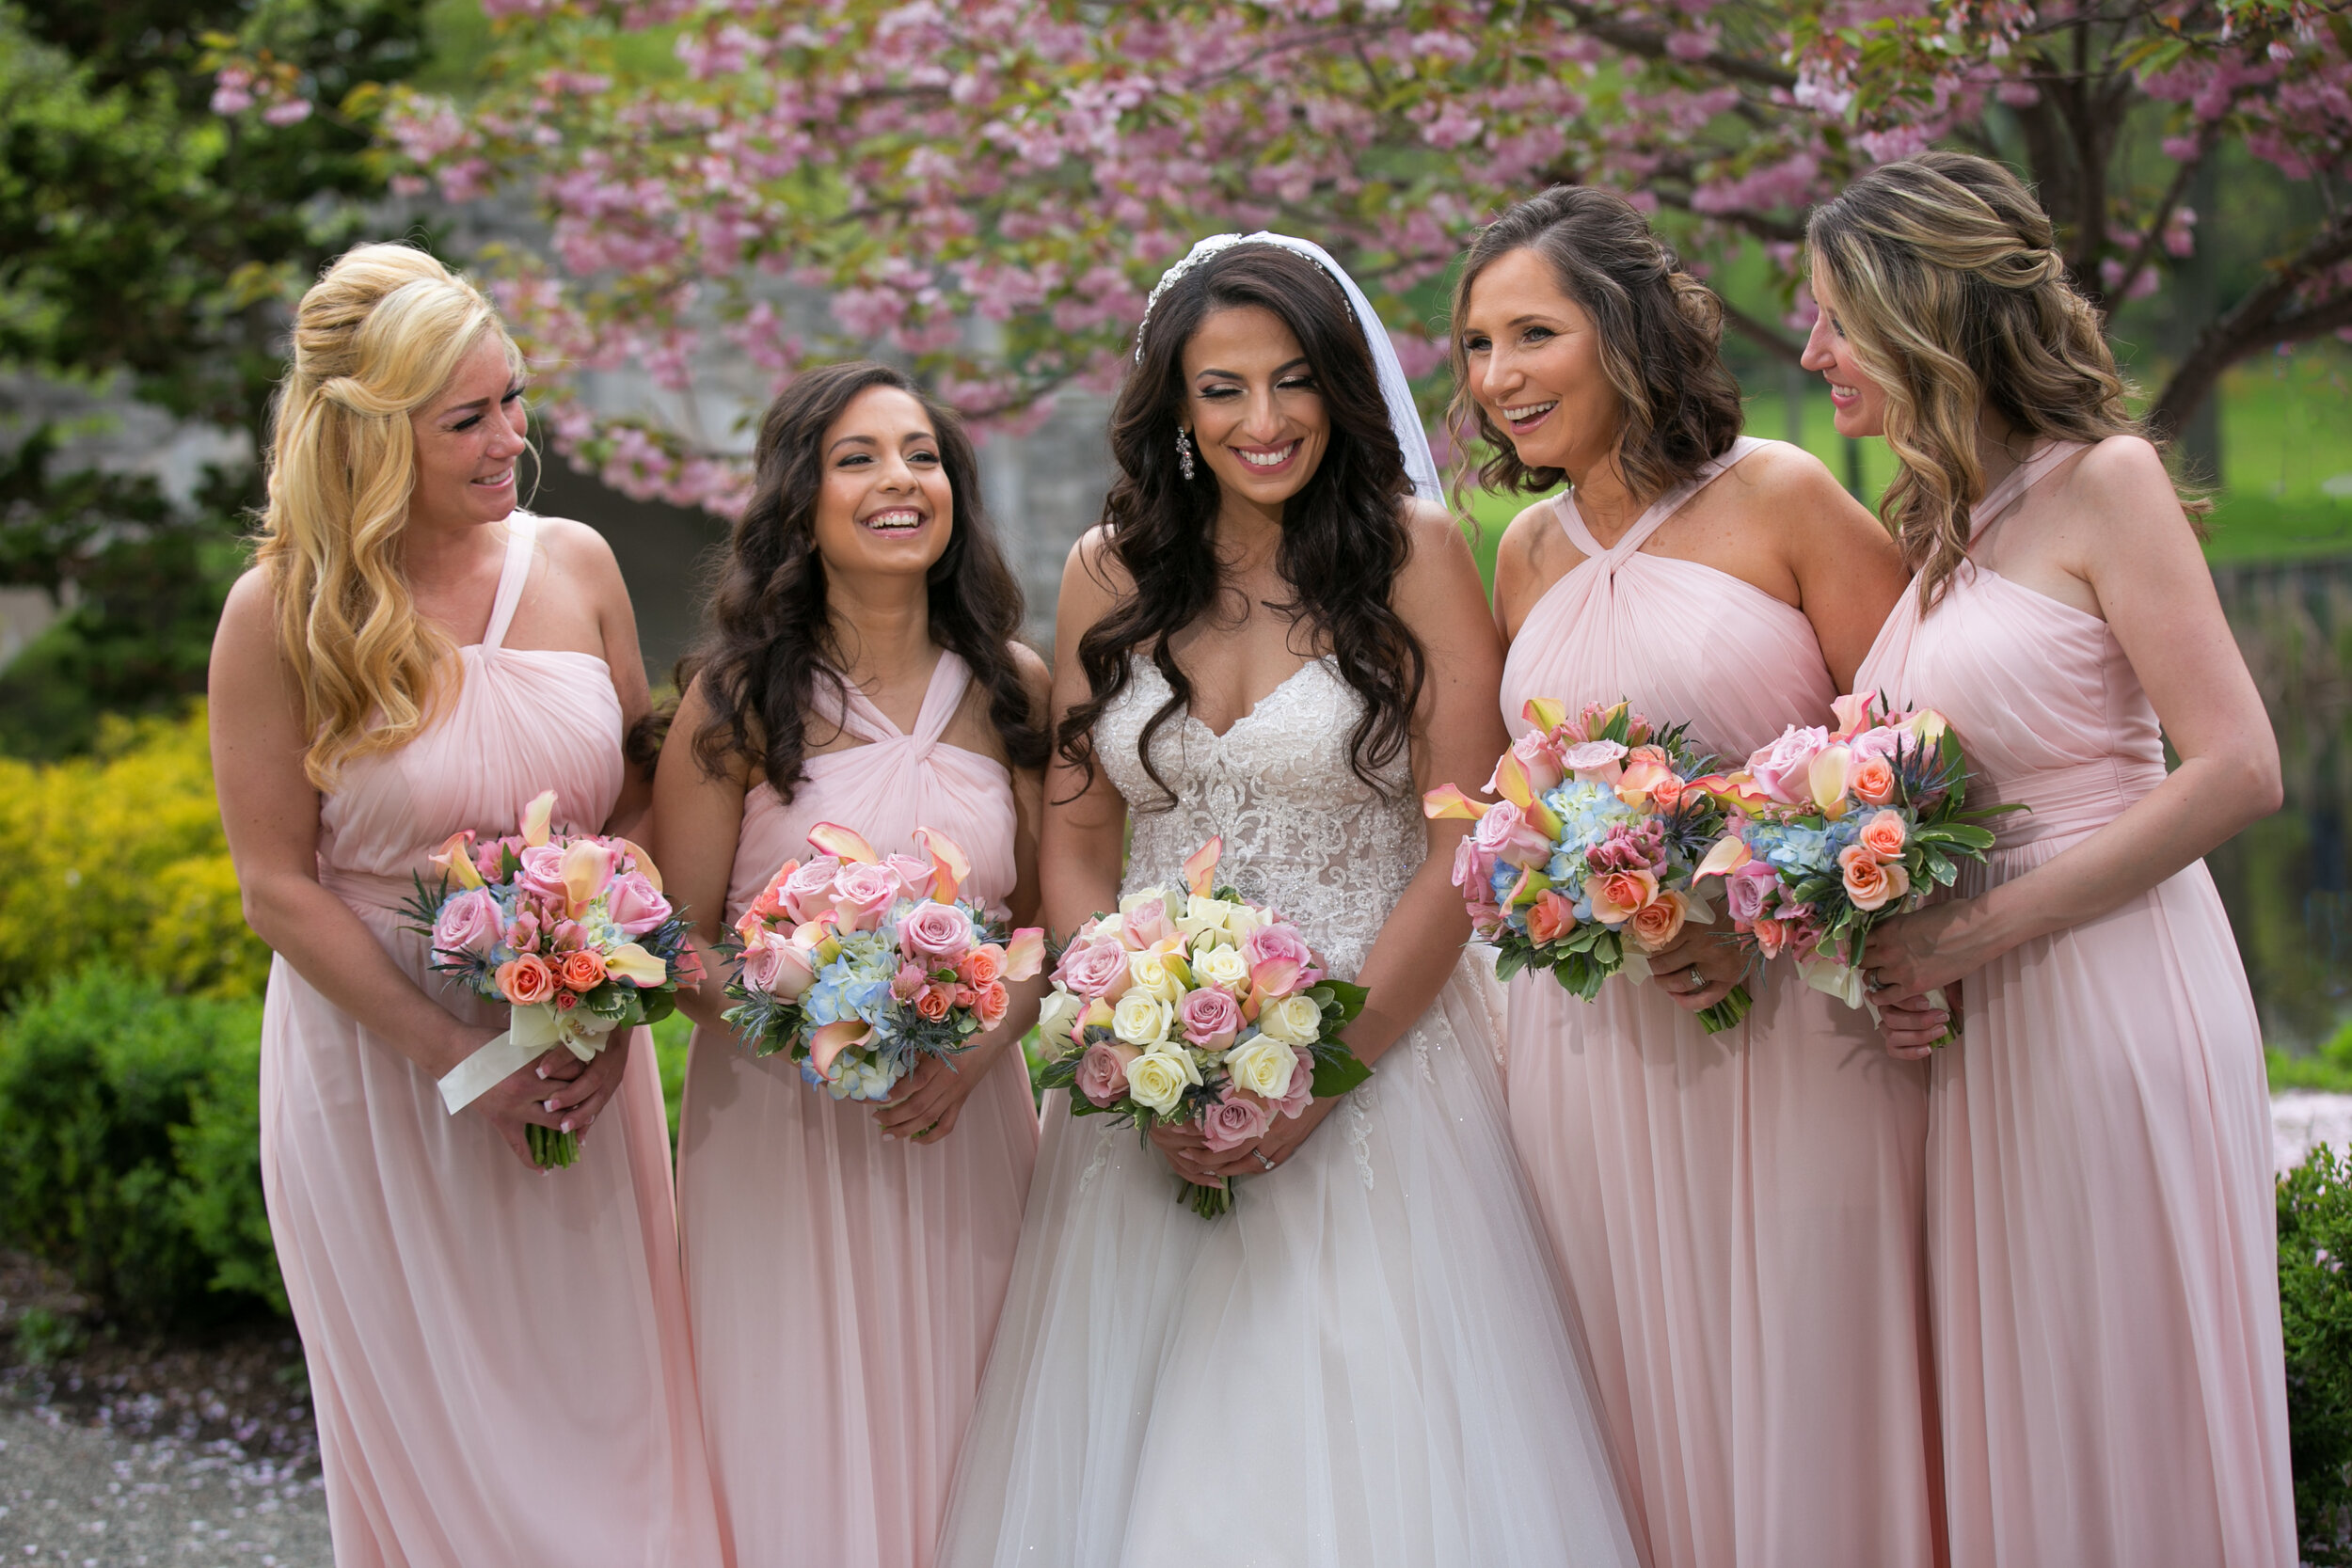 Lightmaster-Studios-Spring-Bride-in-white-standing-with-bridesmaids-in-pink-gown-in-front-of-flowering-cherry-tree-verona-park-nj-.jpg